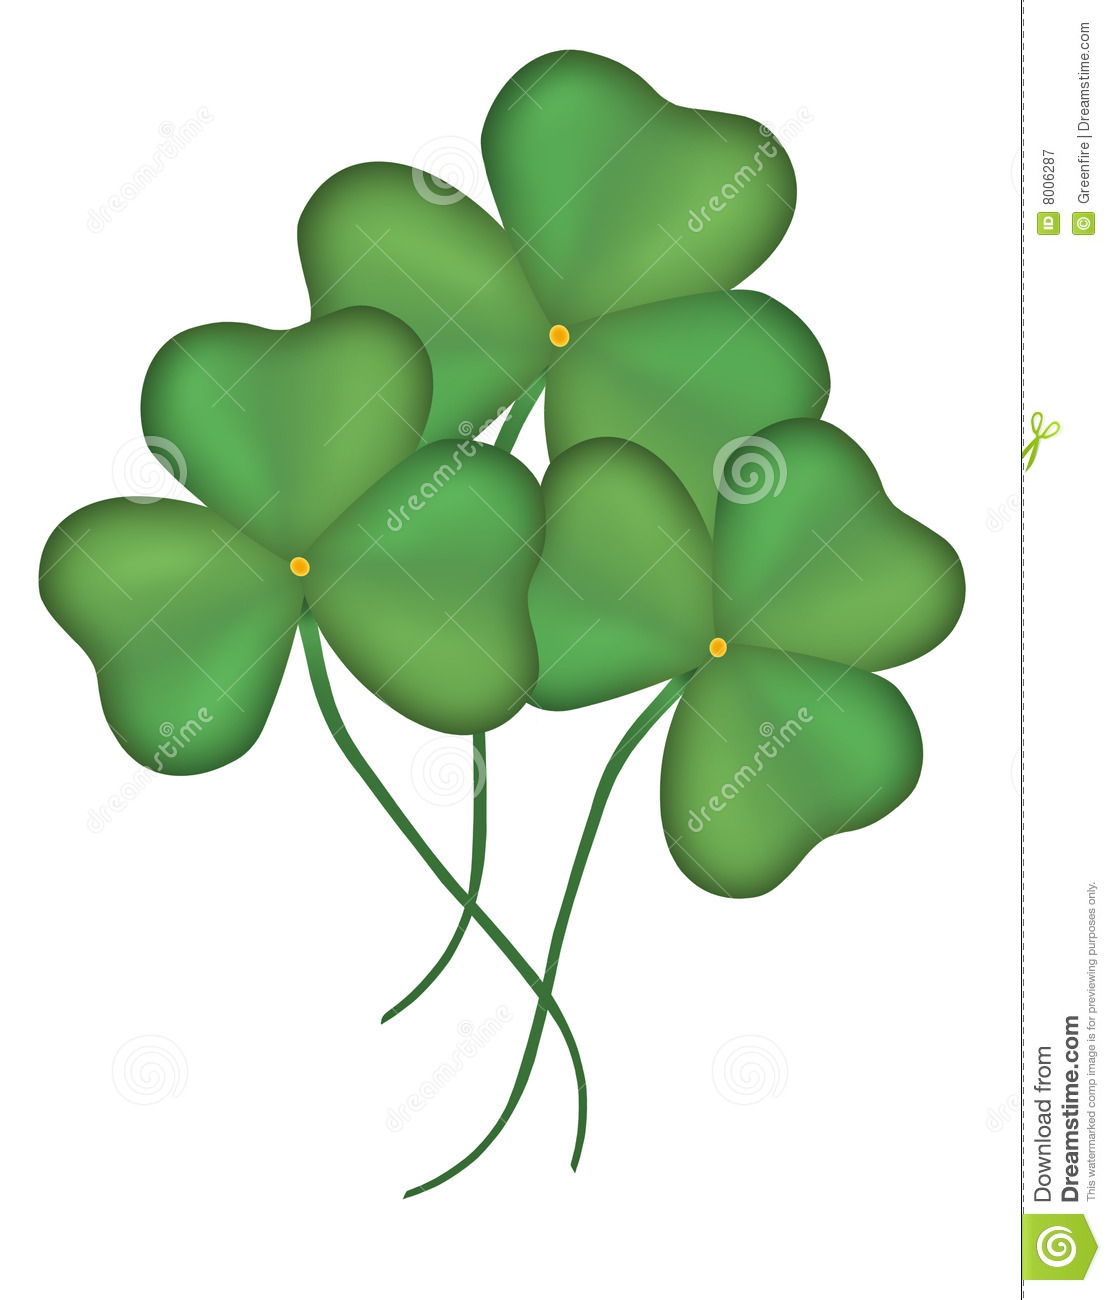 shamrocks stock illustration image of tradition luck